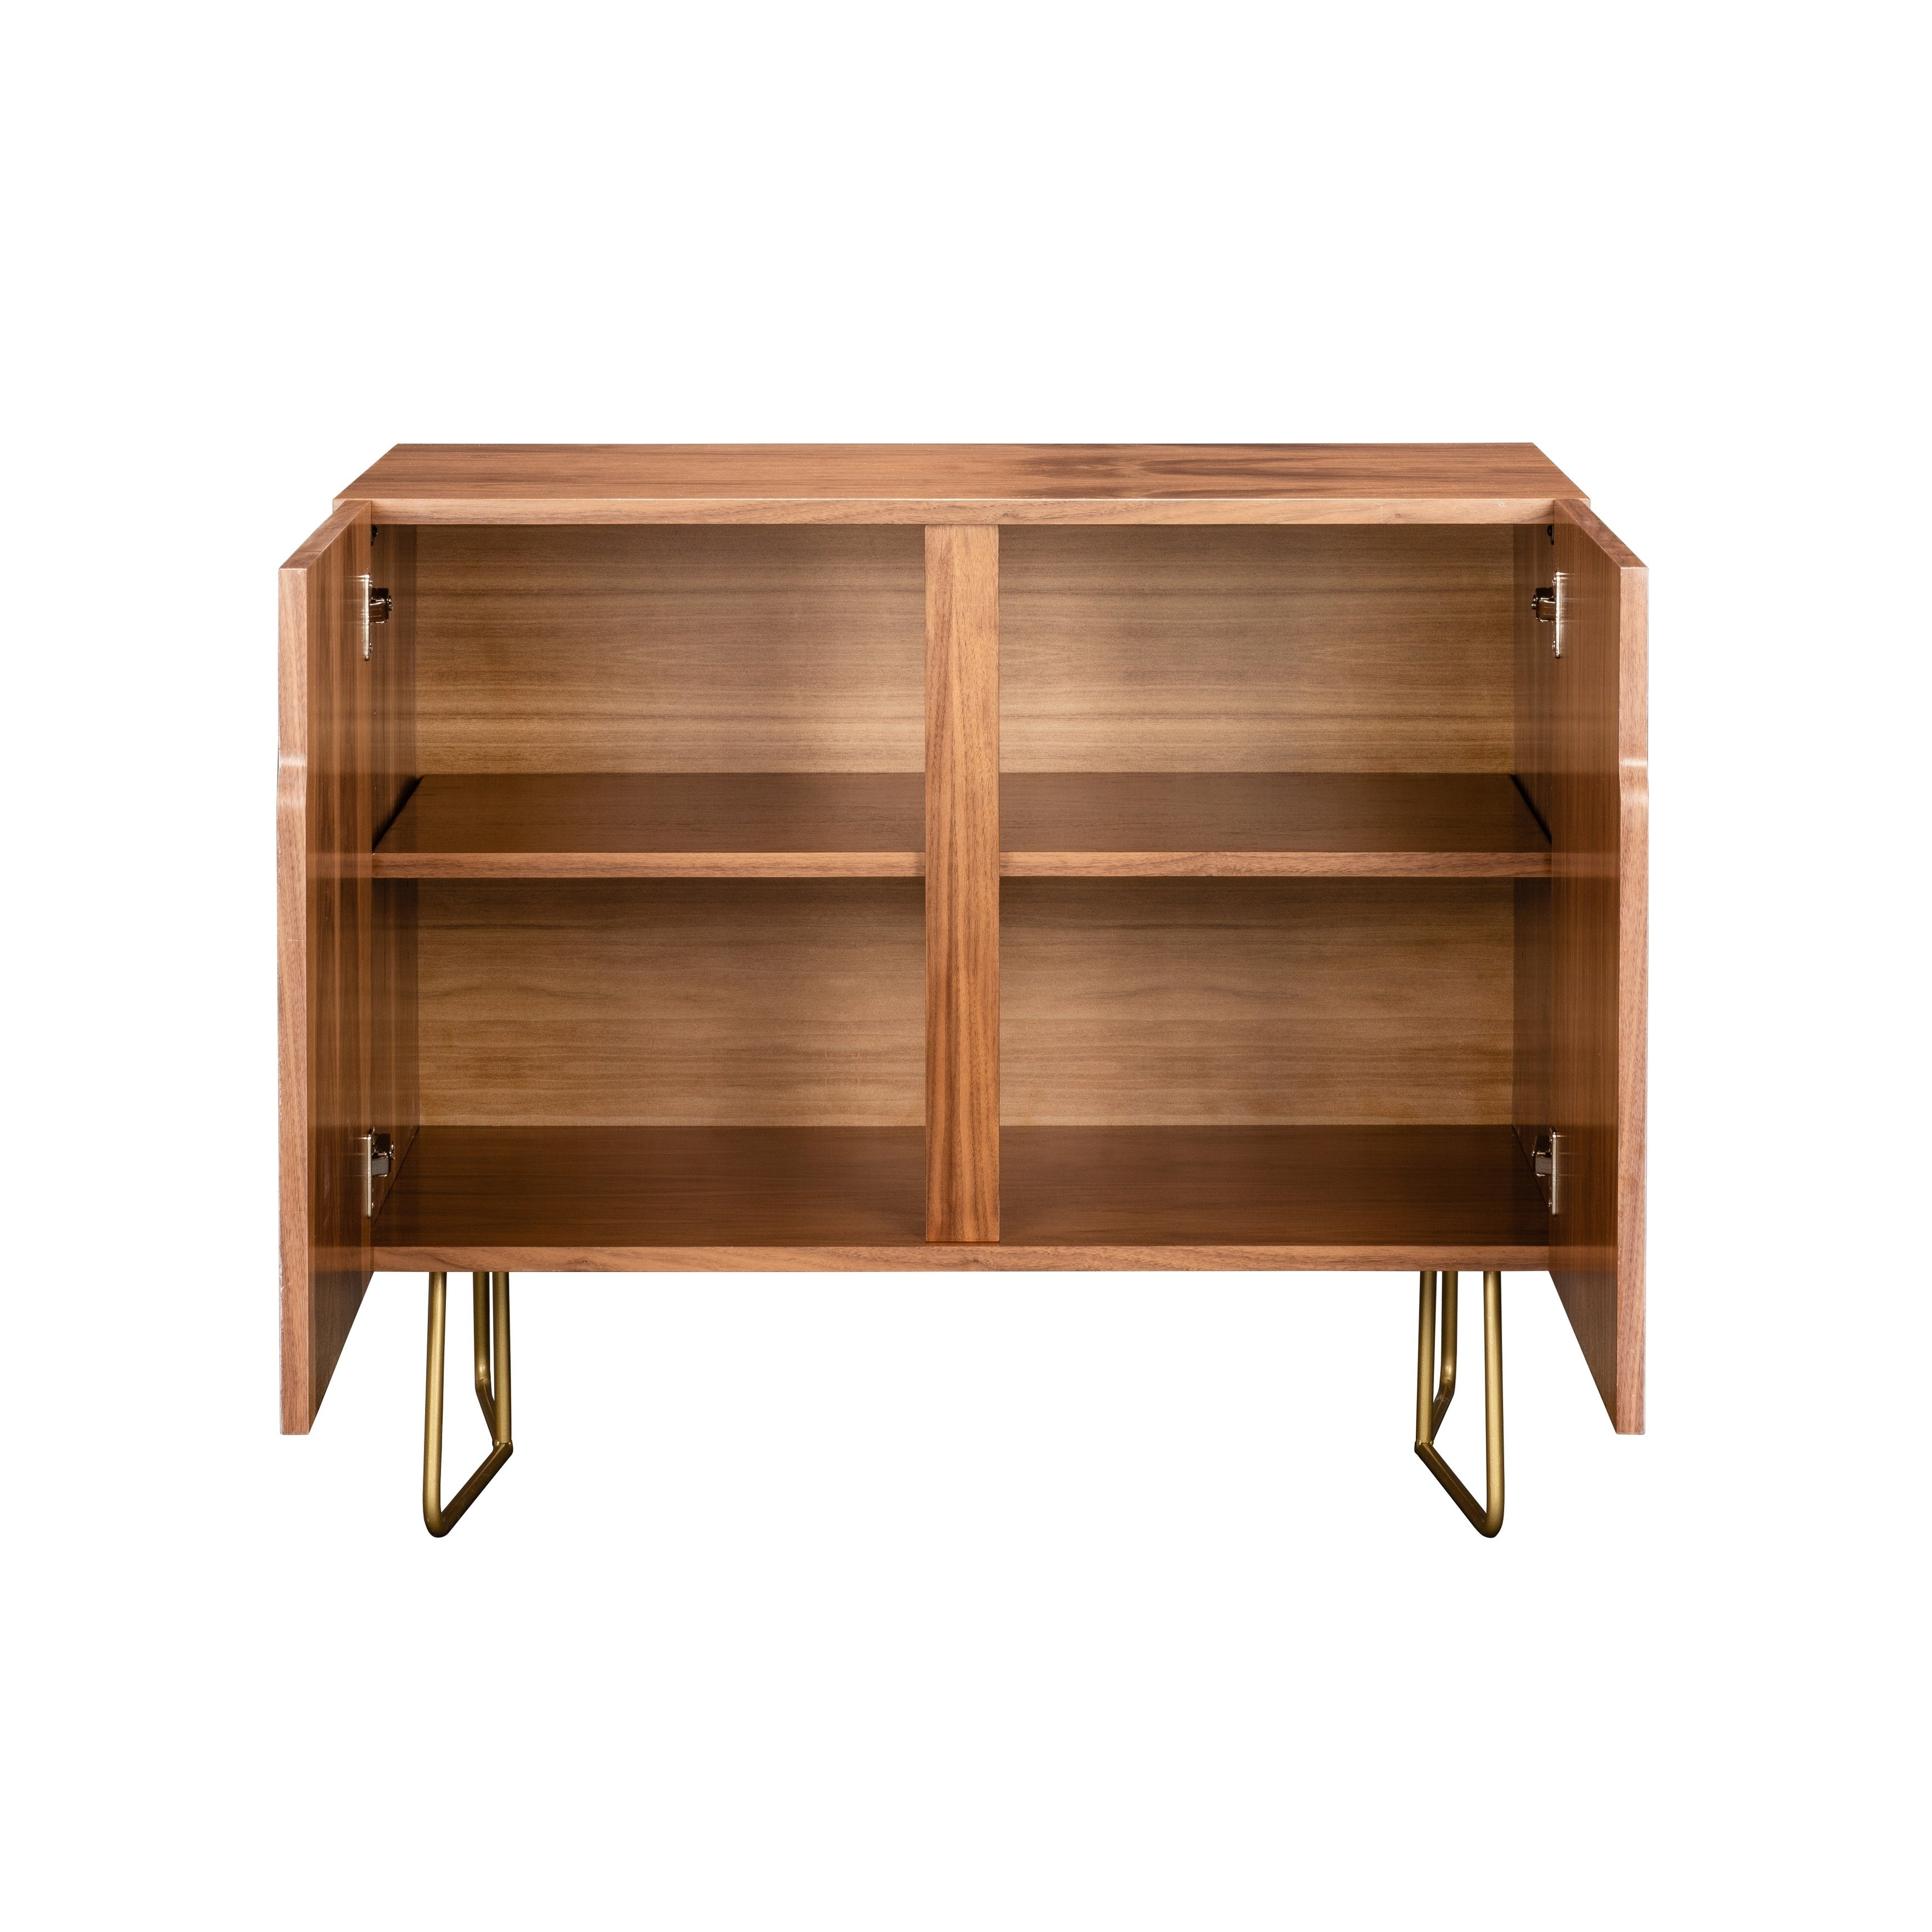 Deny Designs Emerald Cubes Credenza (Birch Or Walnut, 2 Leg Options) With Regard To Emerald Cubes Credenzas (View 5 of 20)